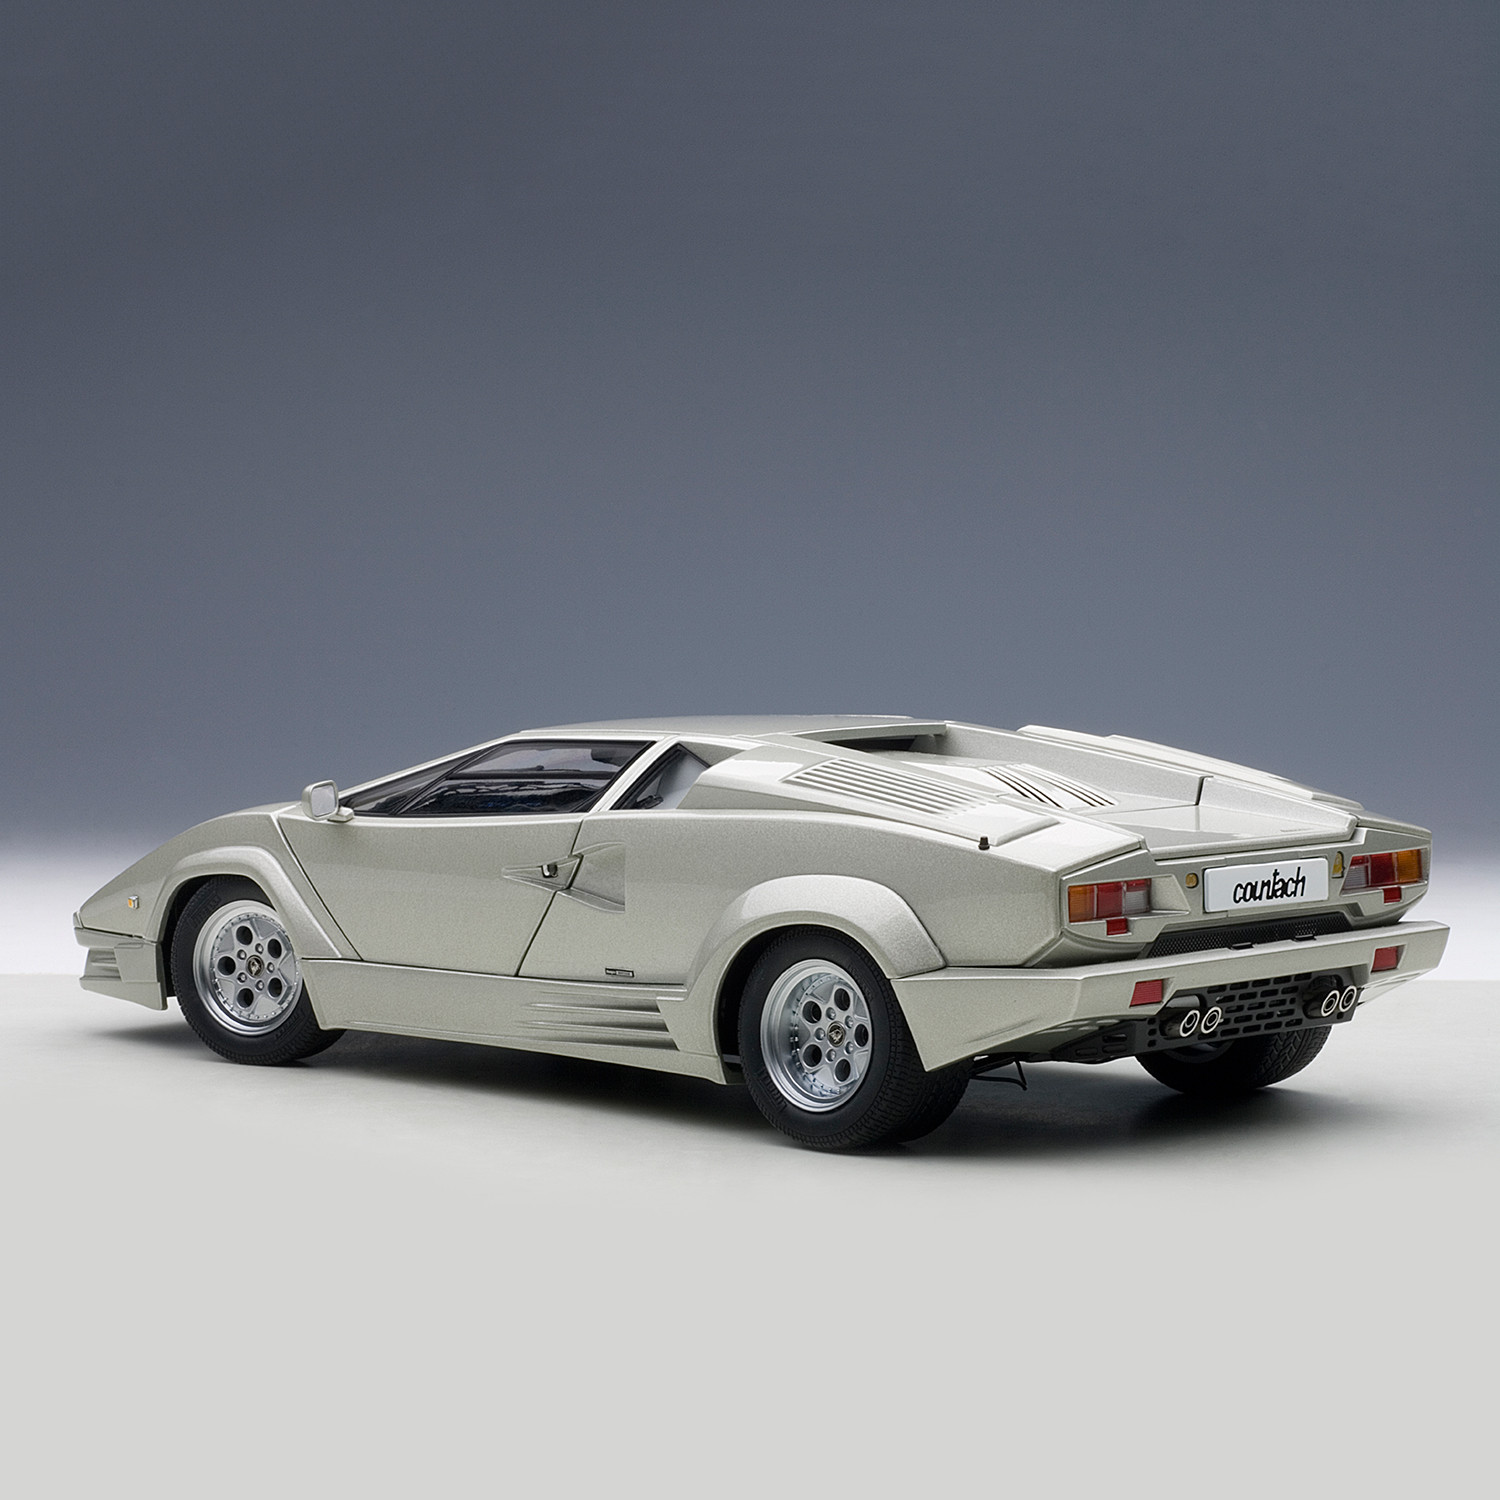 3b2f32c88ebedefedf6bb2c99a7982cd_large Outstanding Lamborghini Countach 25th Anniversary '88 Cars Trend